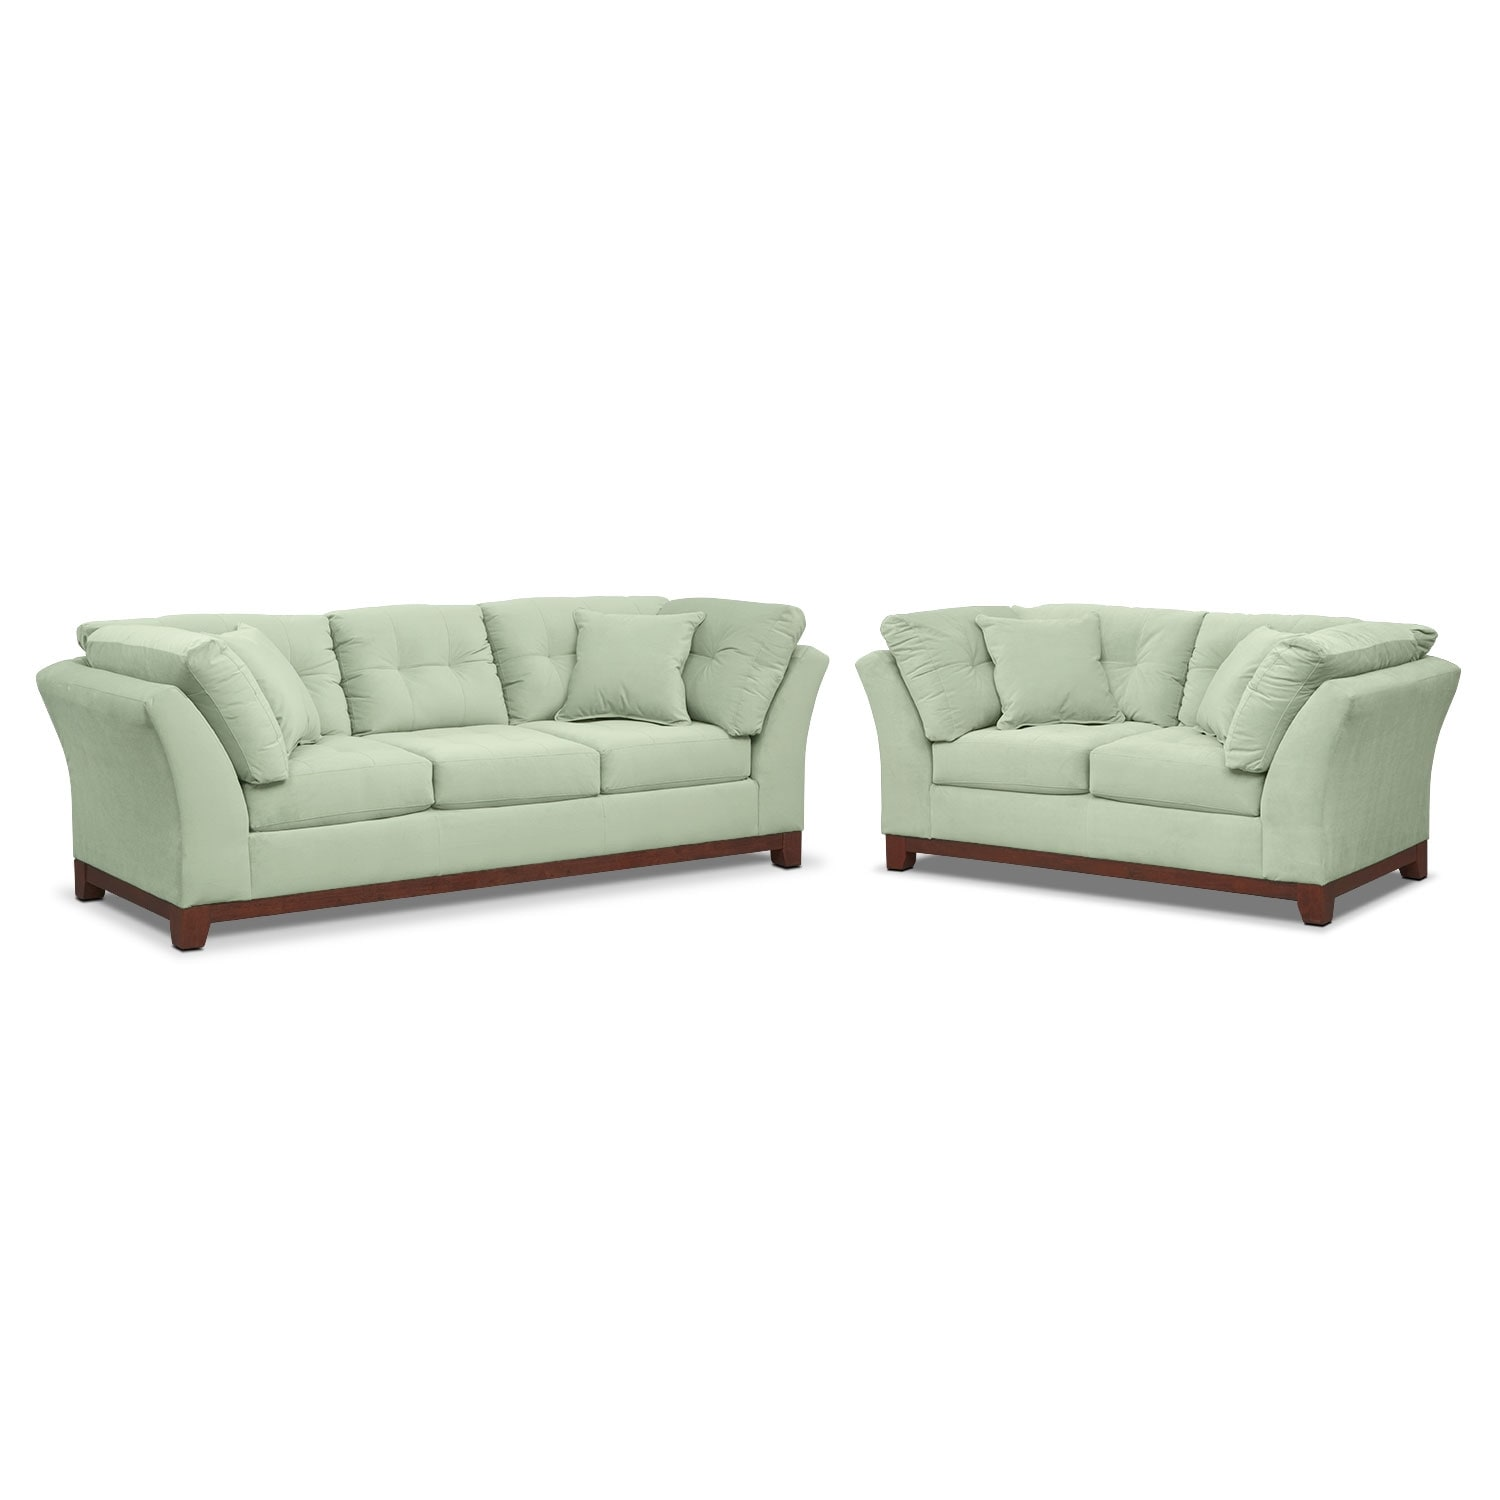 Living Room Furniture - Solace Spa 2 Pc. Living Room